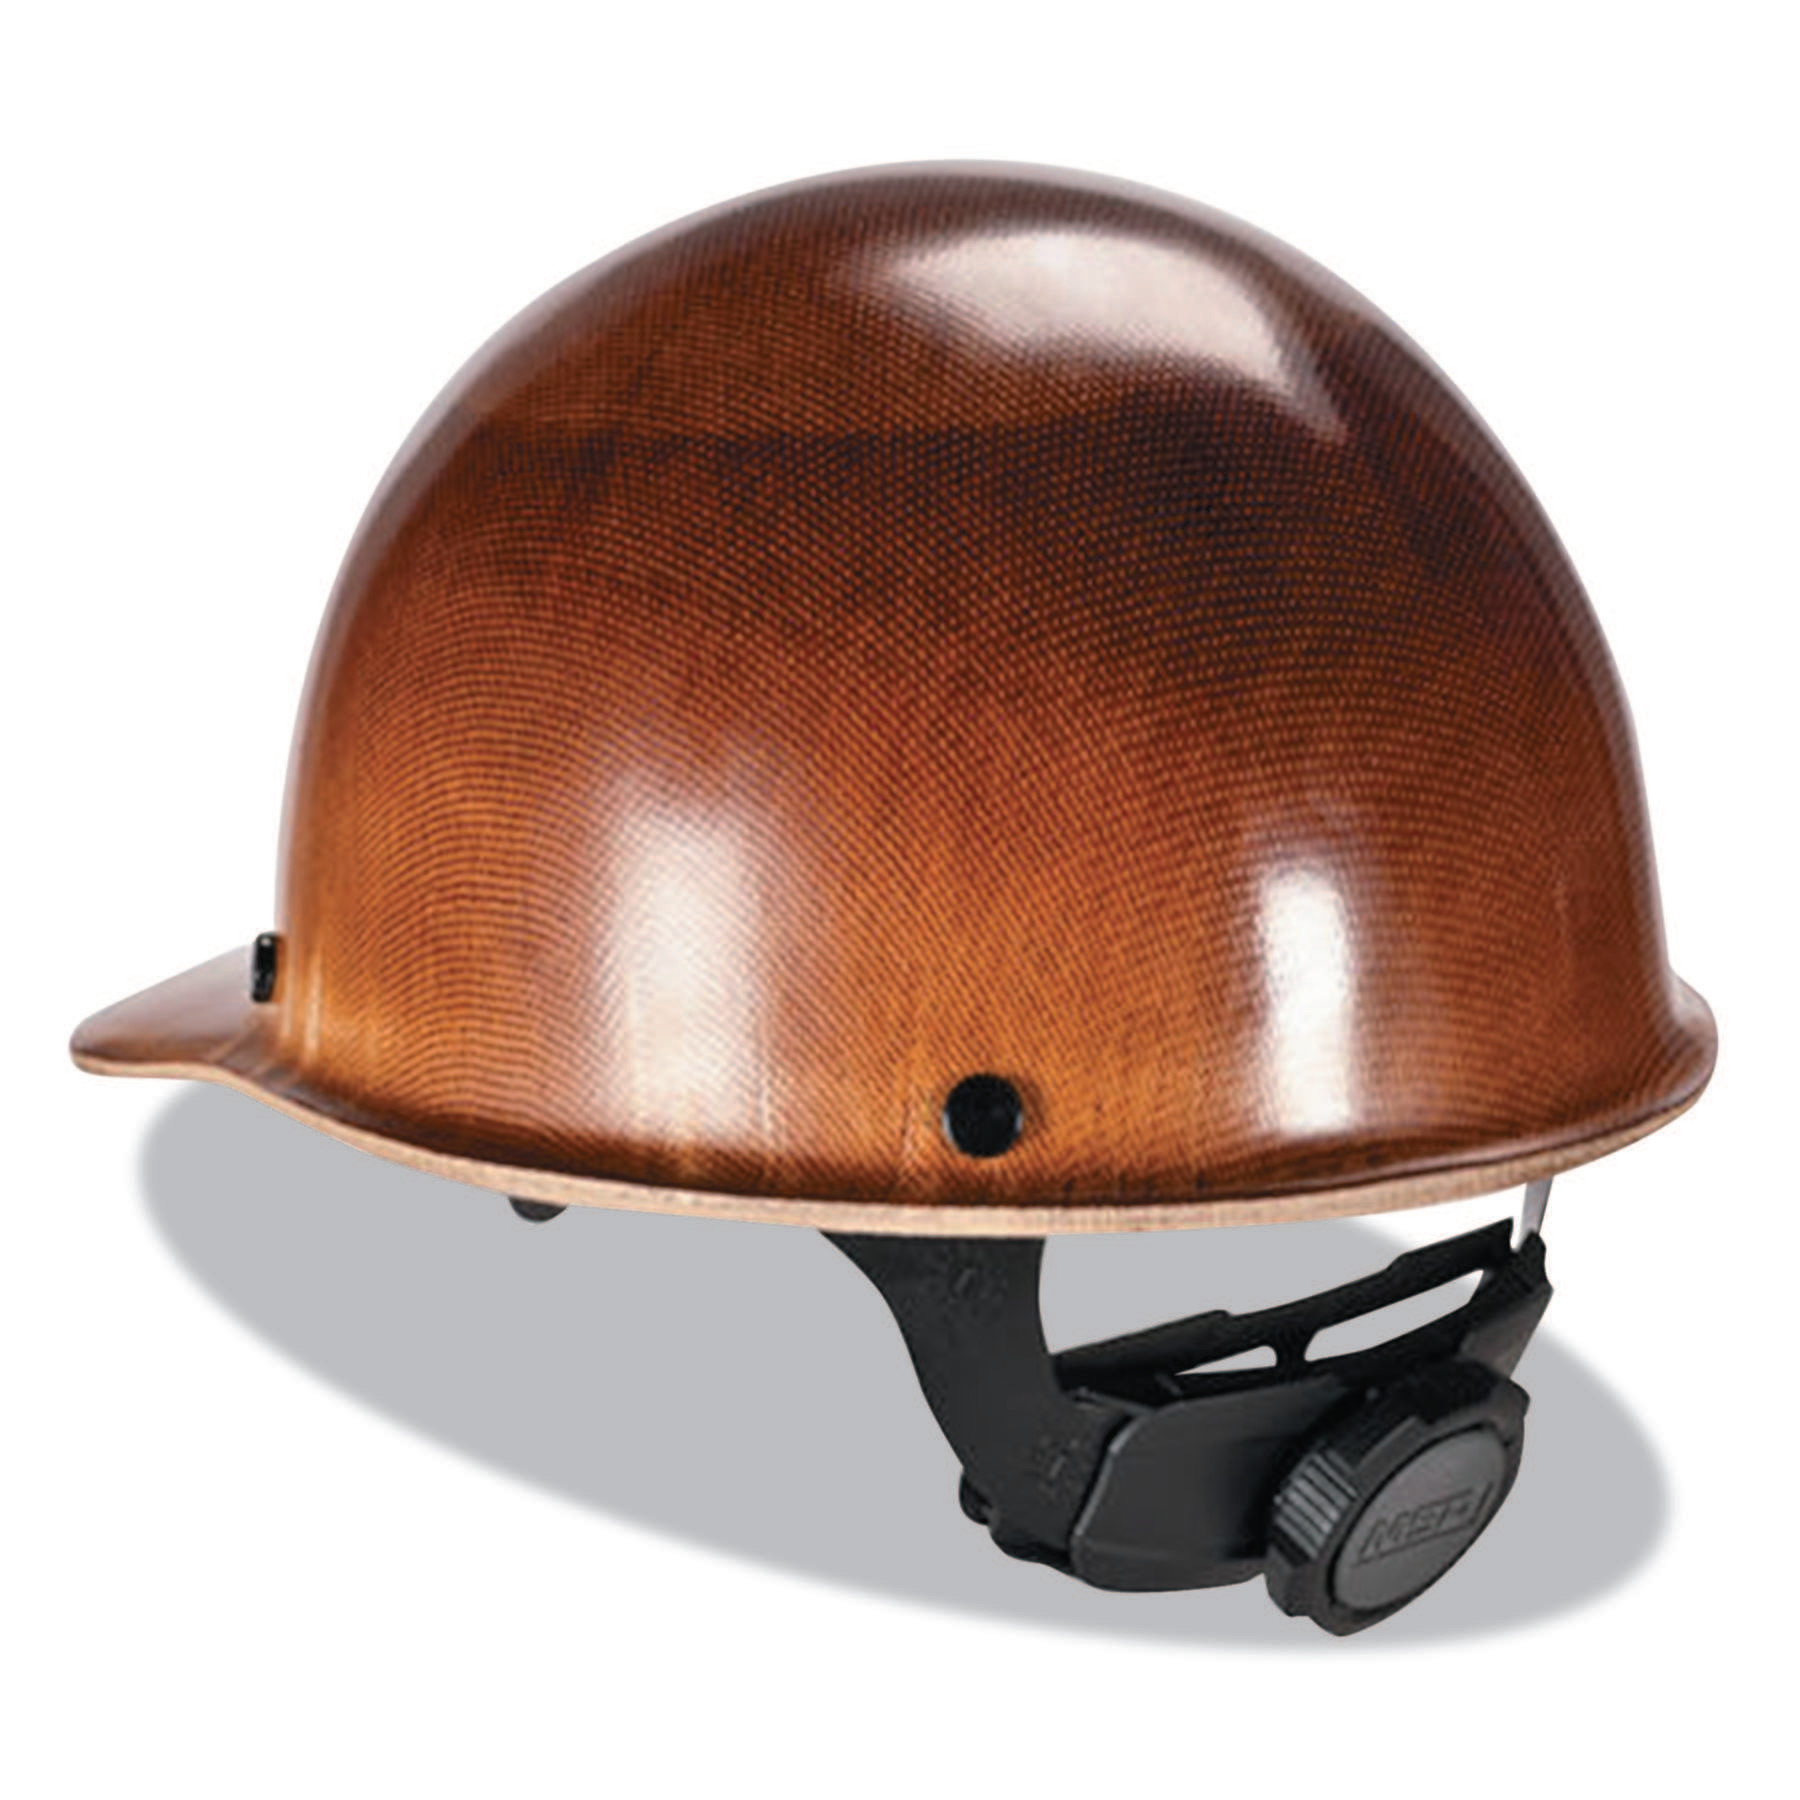 MSA Skullgard Caps with Fas-Trac Suspension, Fas-Trac Ratchet, Cap, Natural Tan